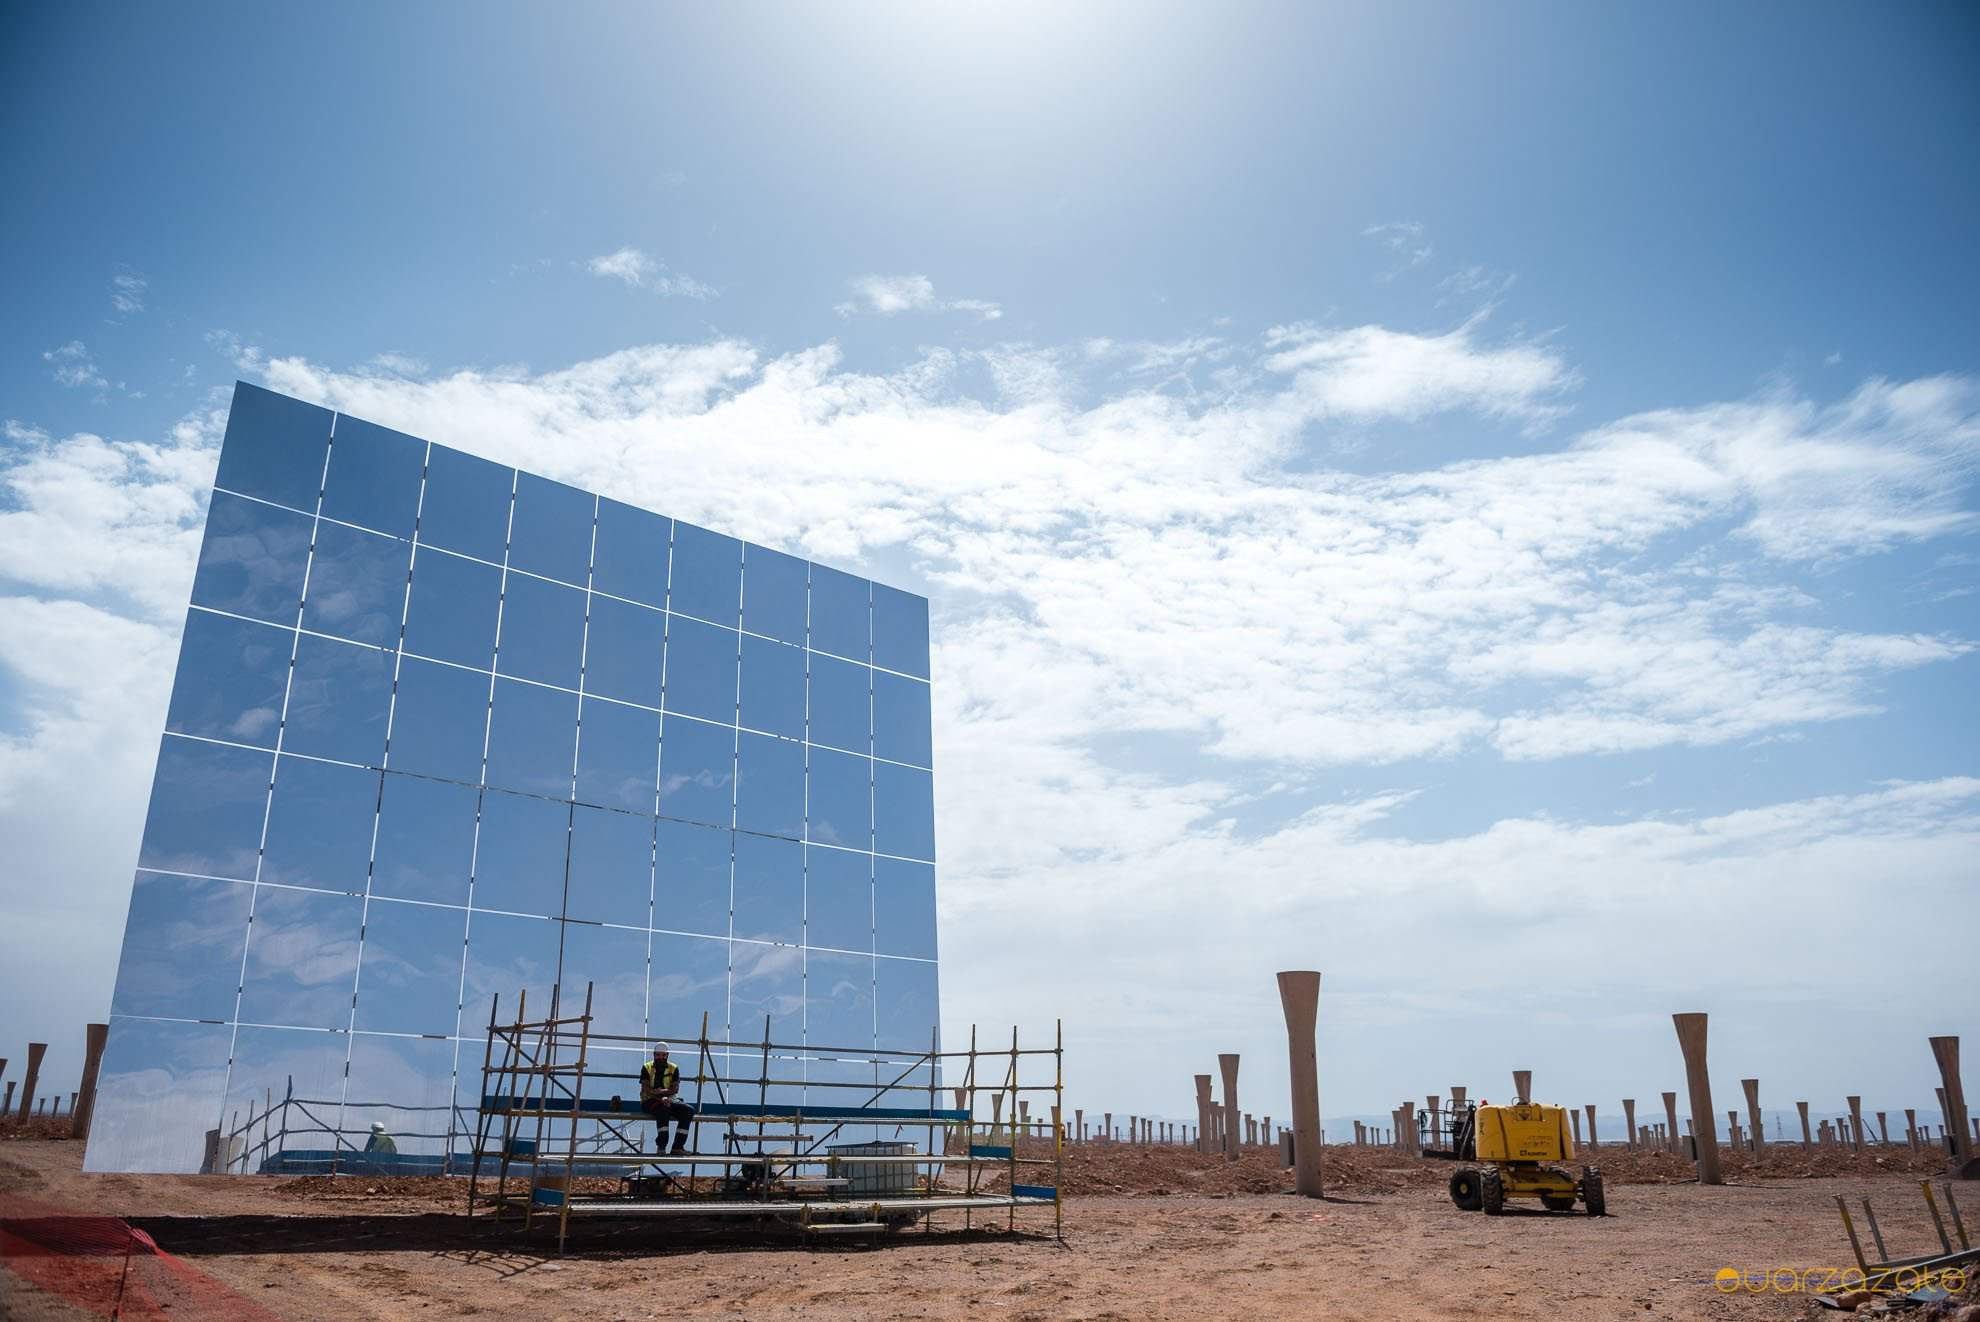 Worker infront of Huge mirrors Ouarzazate solar power station